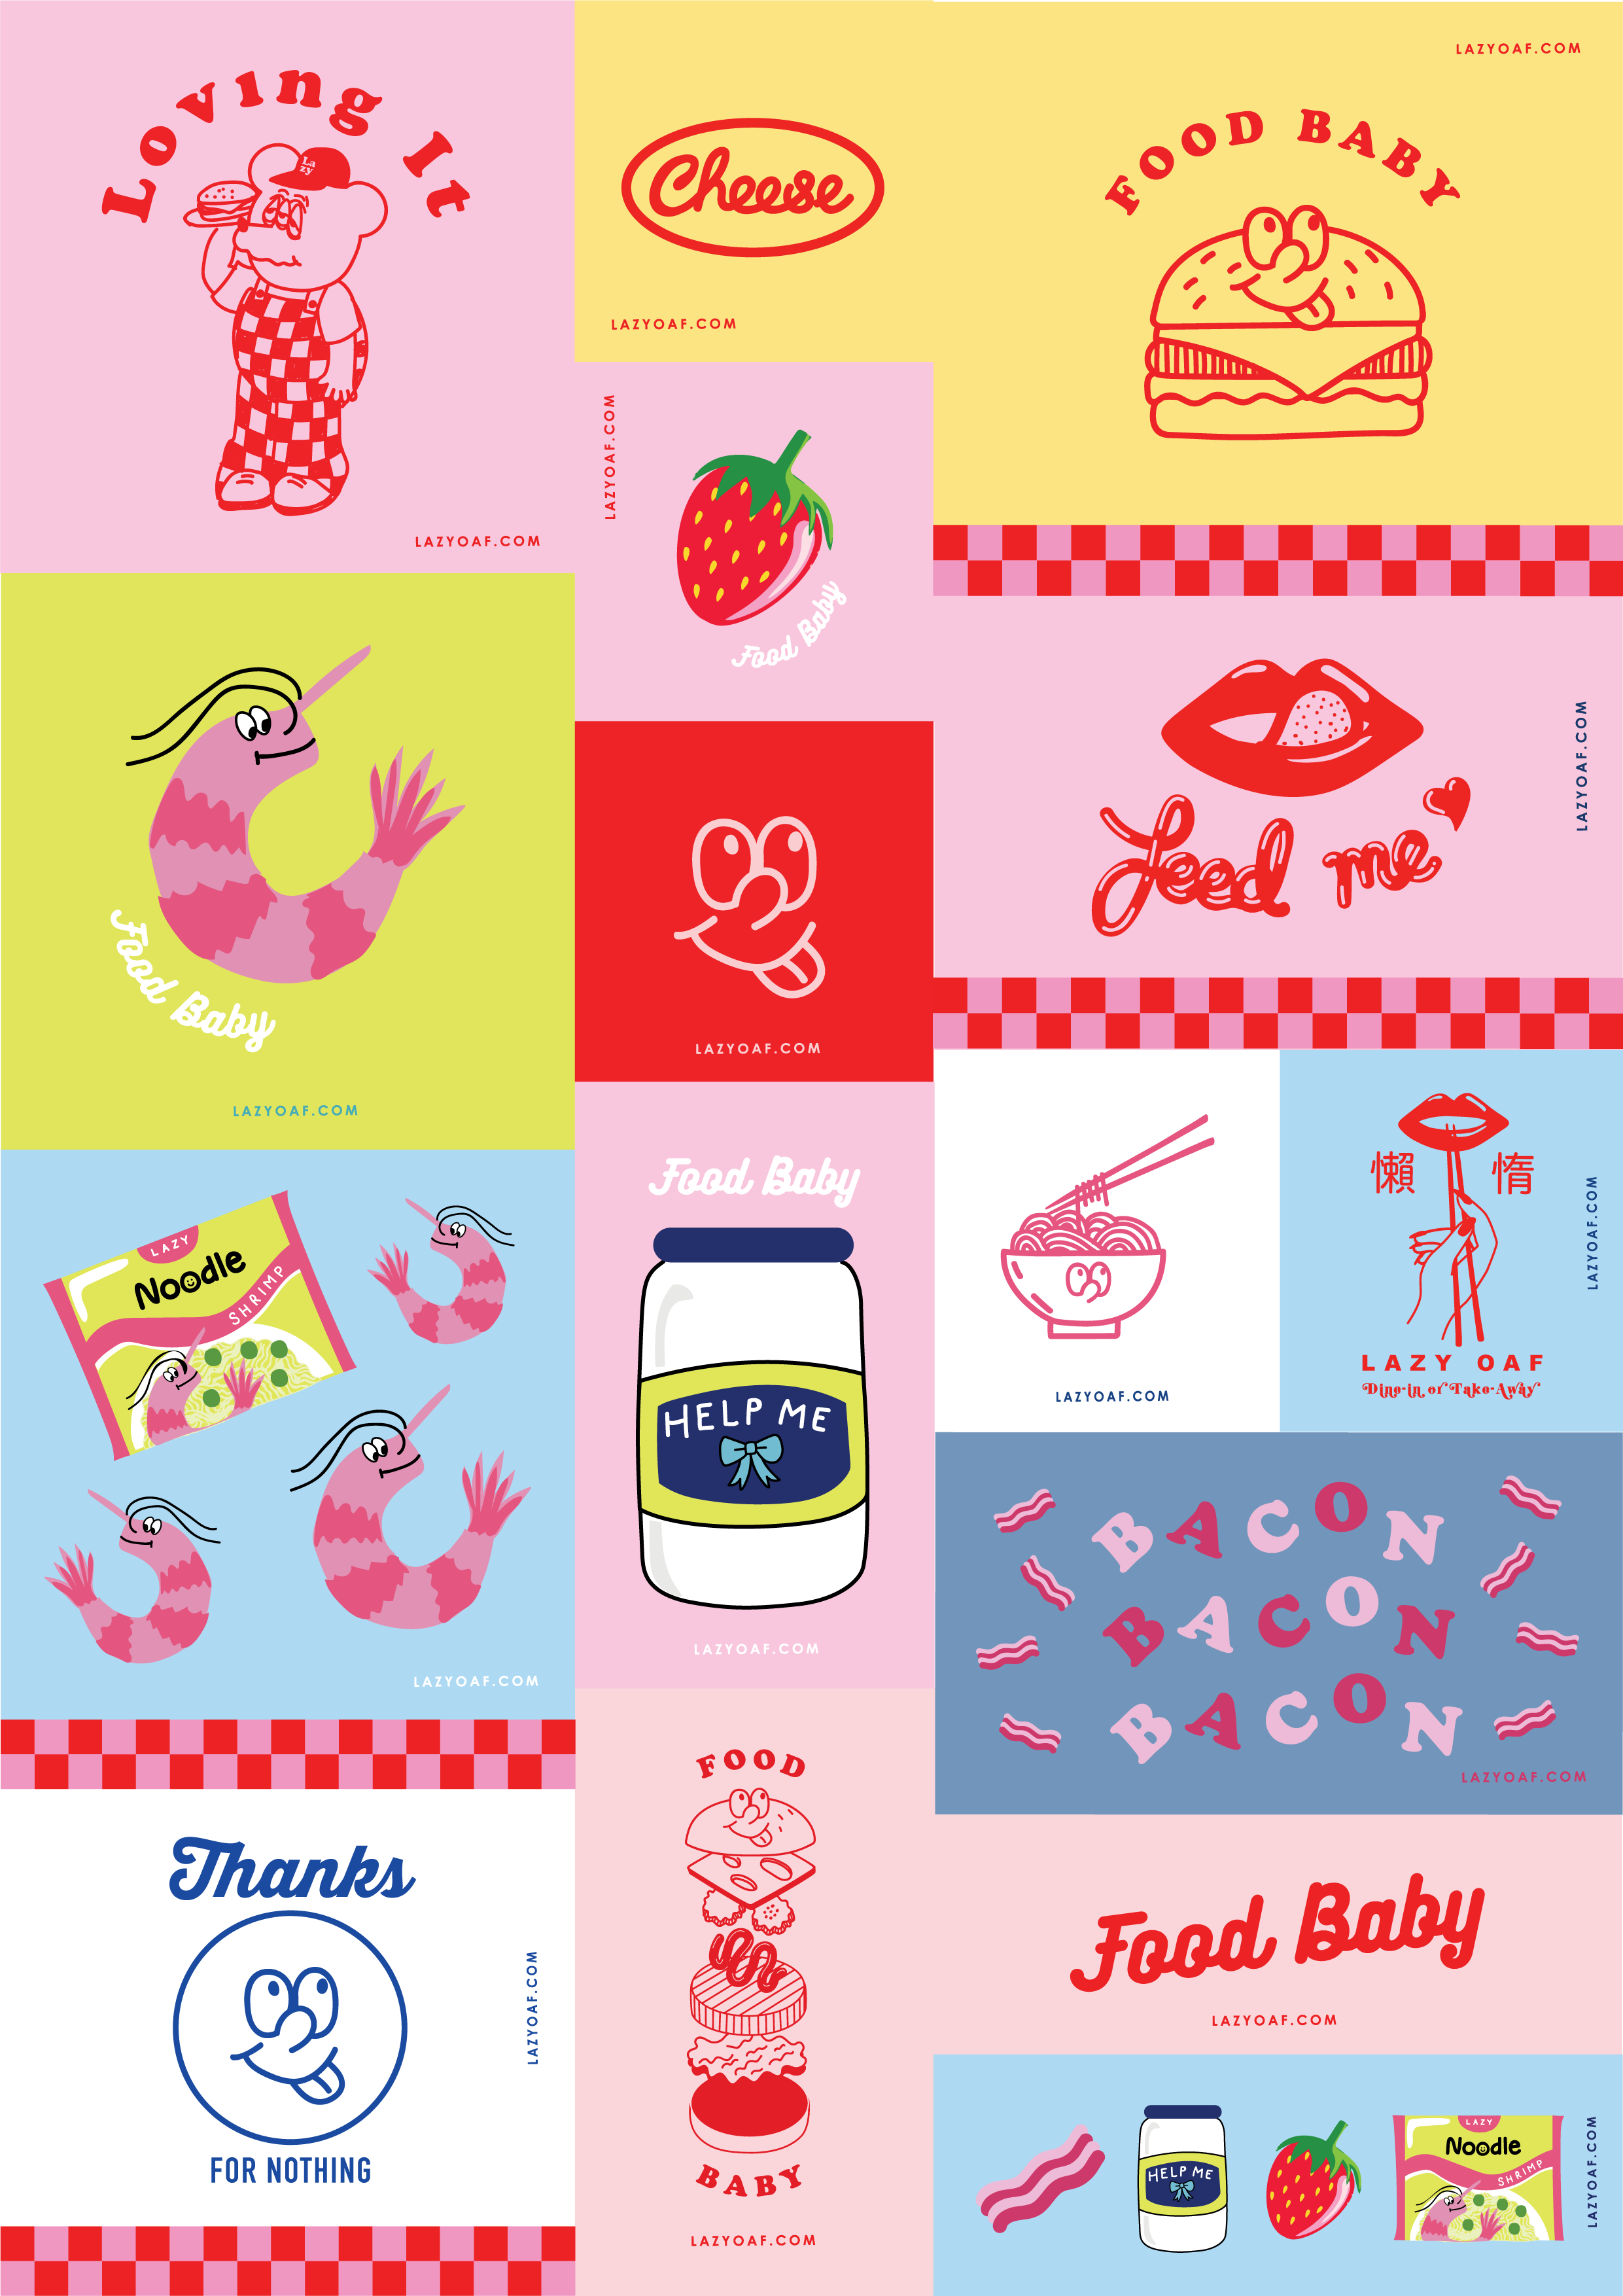 fb stickers-02.png